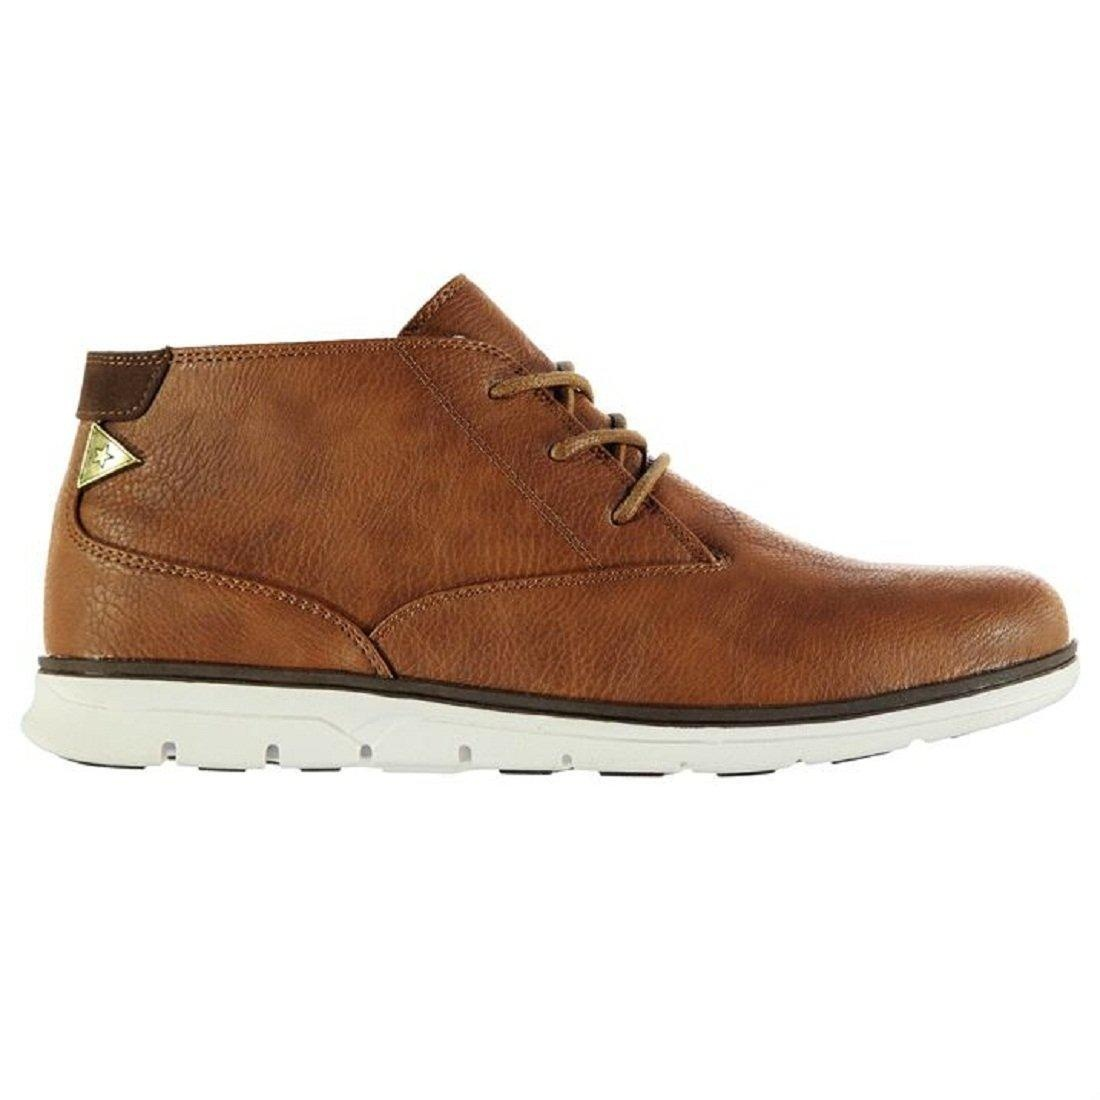 Mens Soviet Illinois Casual Boots Shoes Tan (UK 7 / US 7.5)